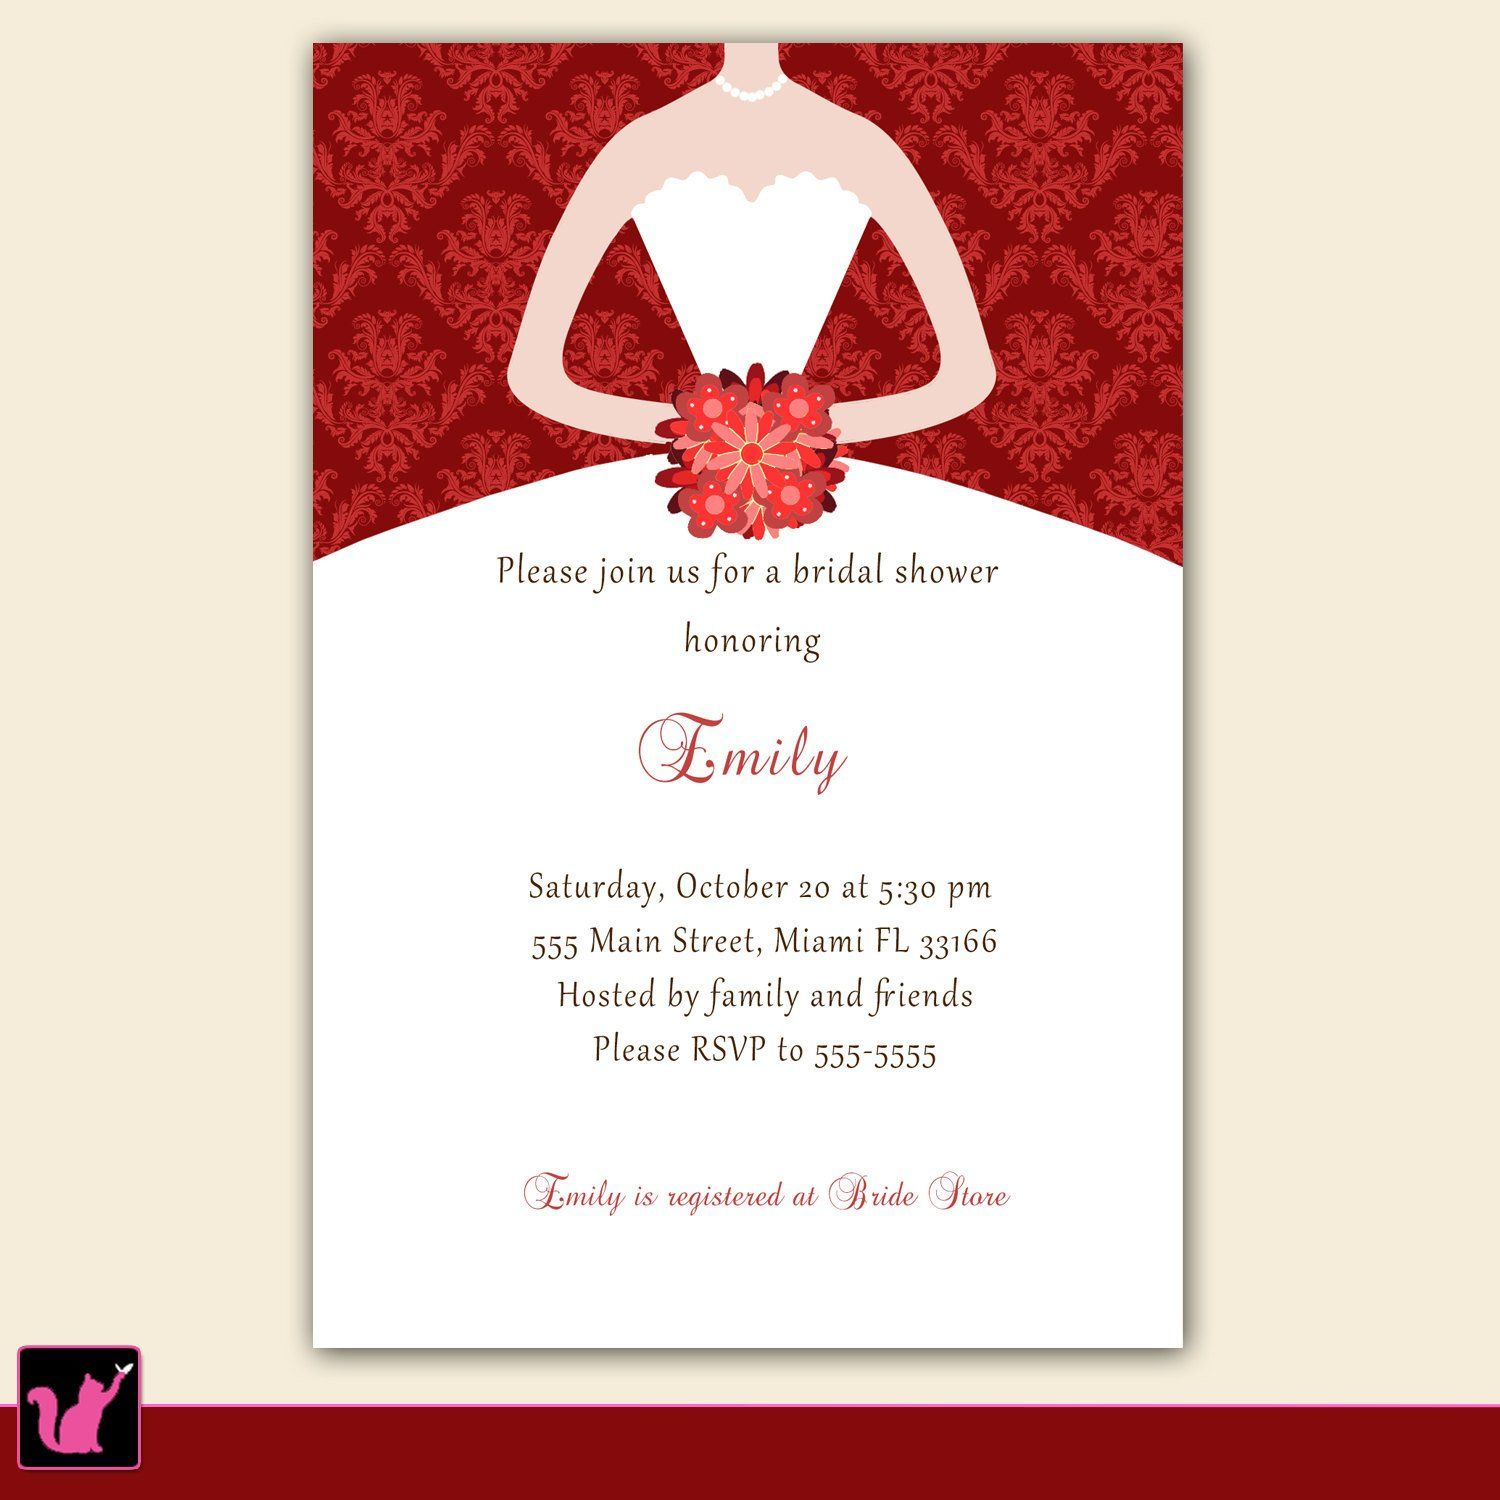 Dress Invitation Bridal Shower Sweet 16 Red Damask – Pink The Cat ...